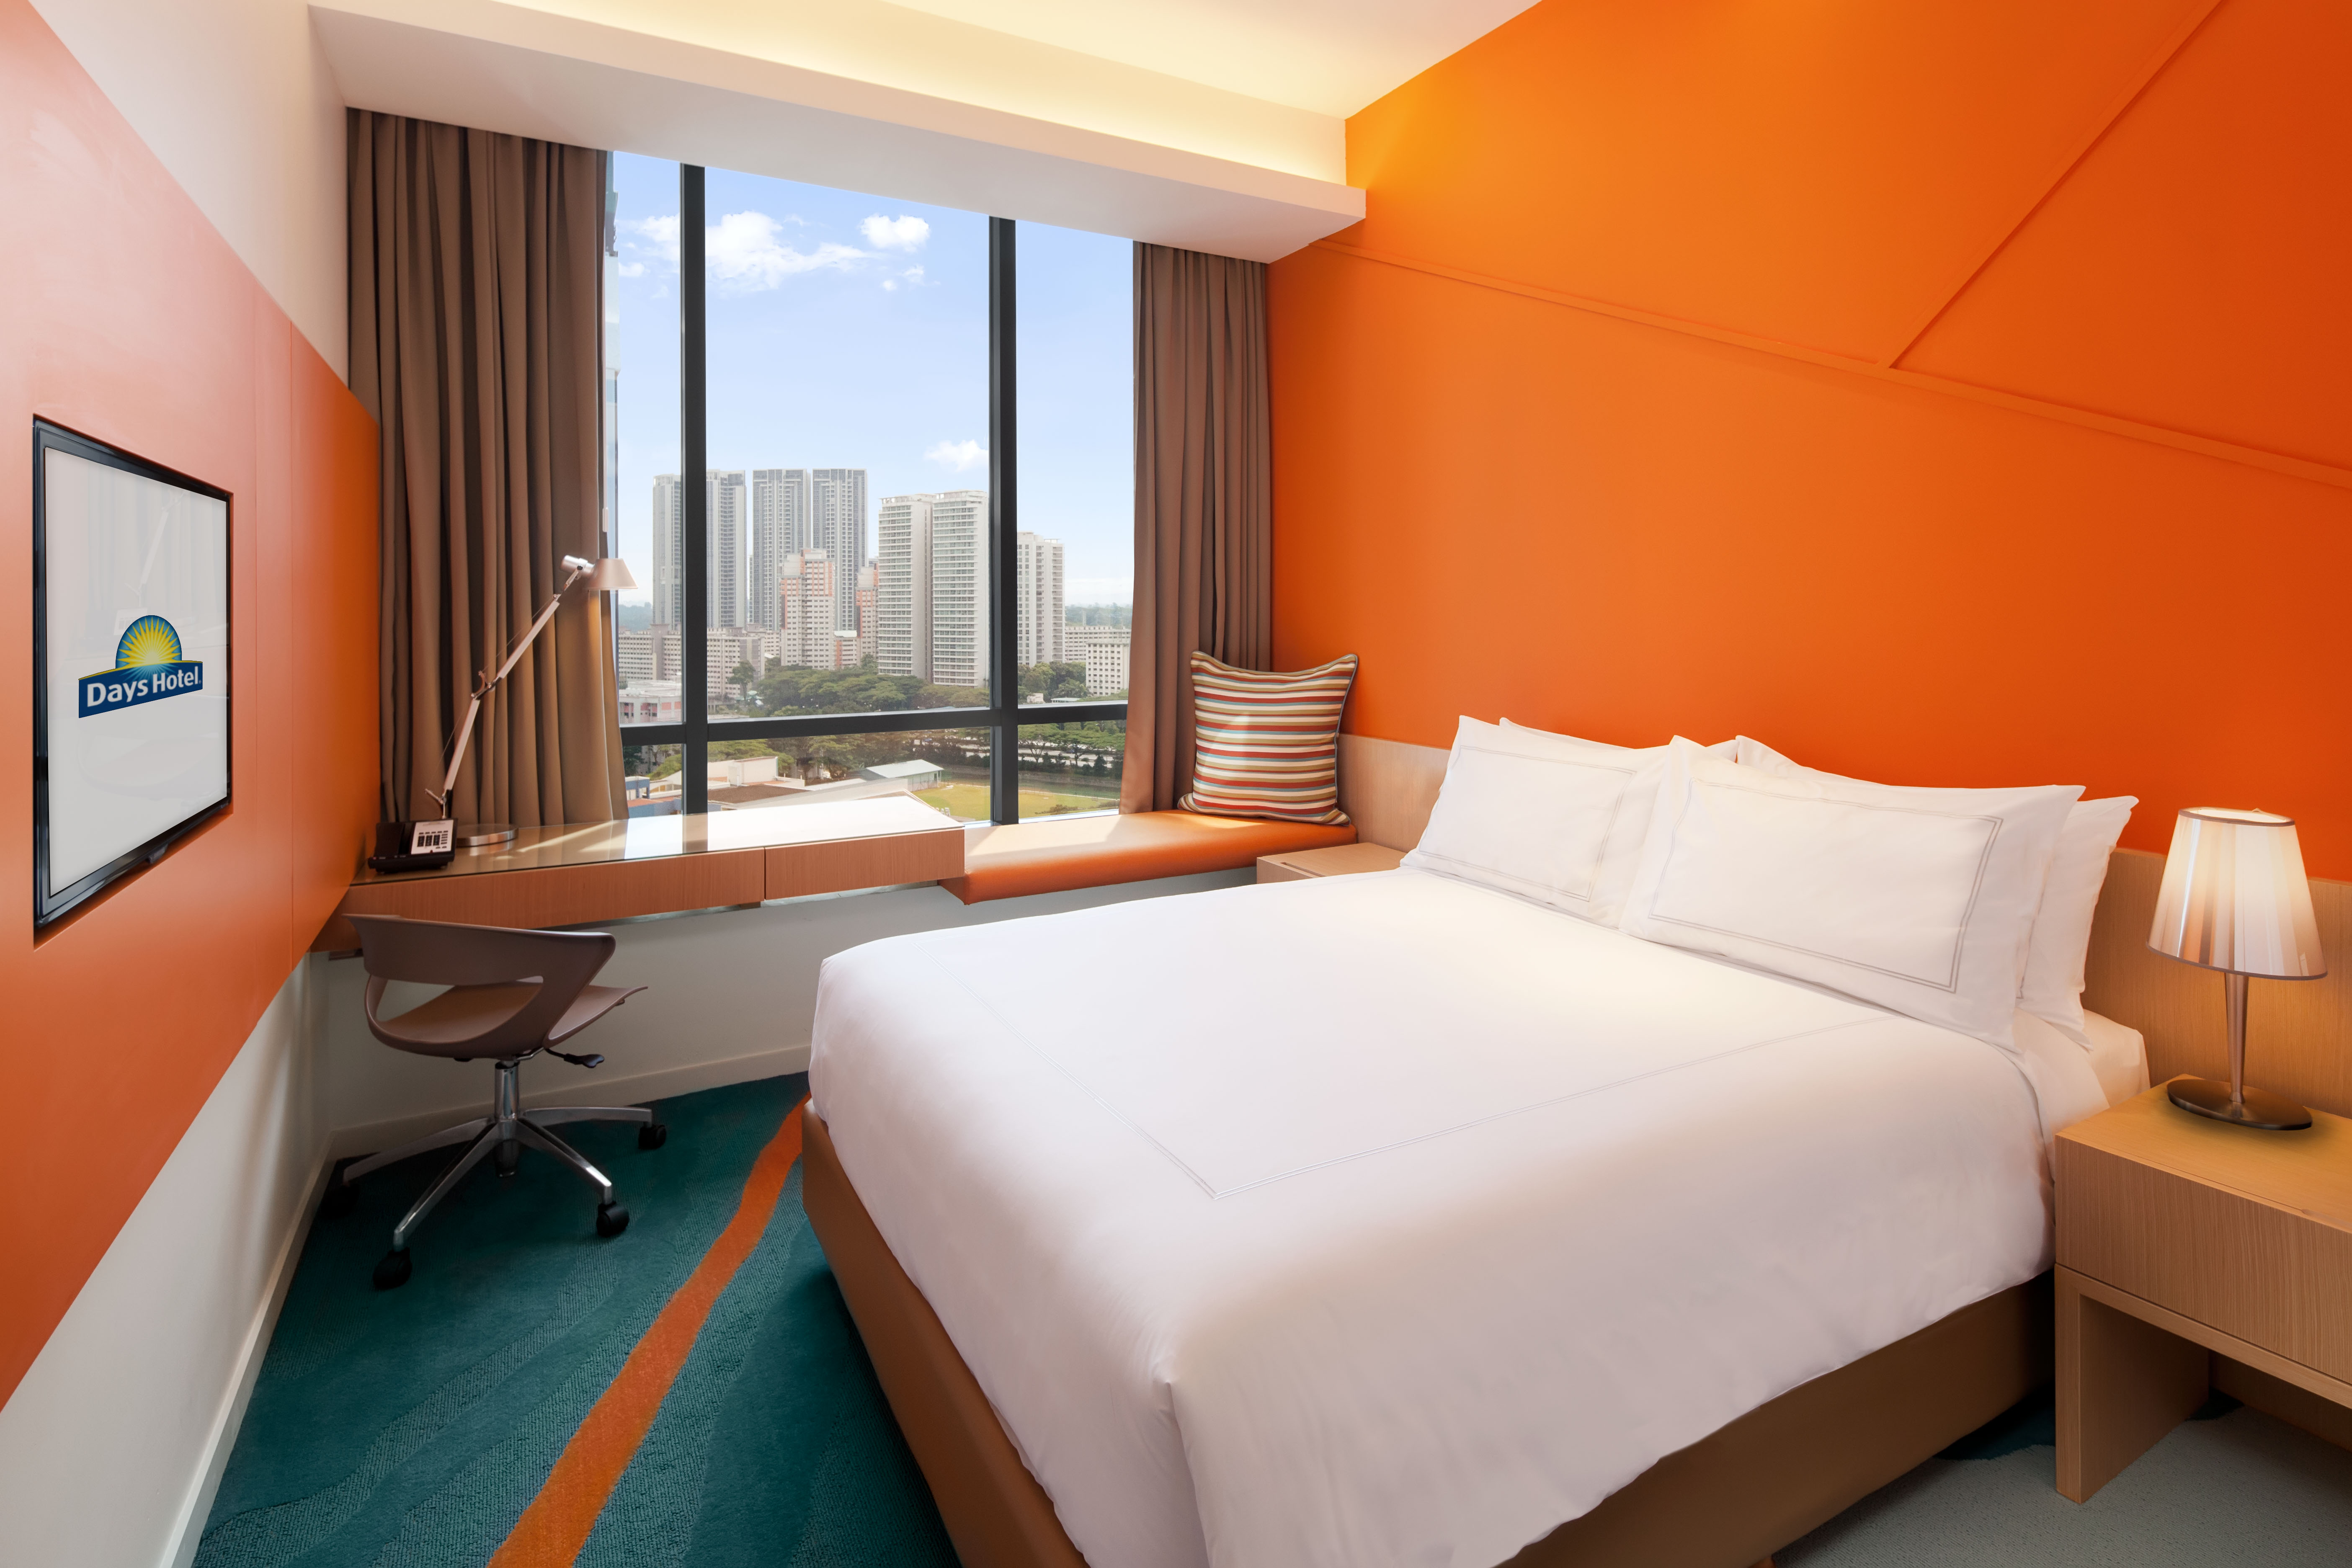 Days Hotel by Wyndham Singapore at Zhongshan Park